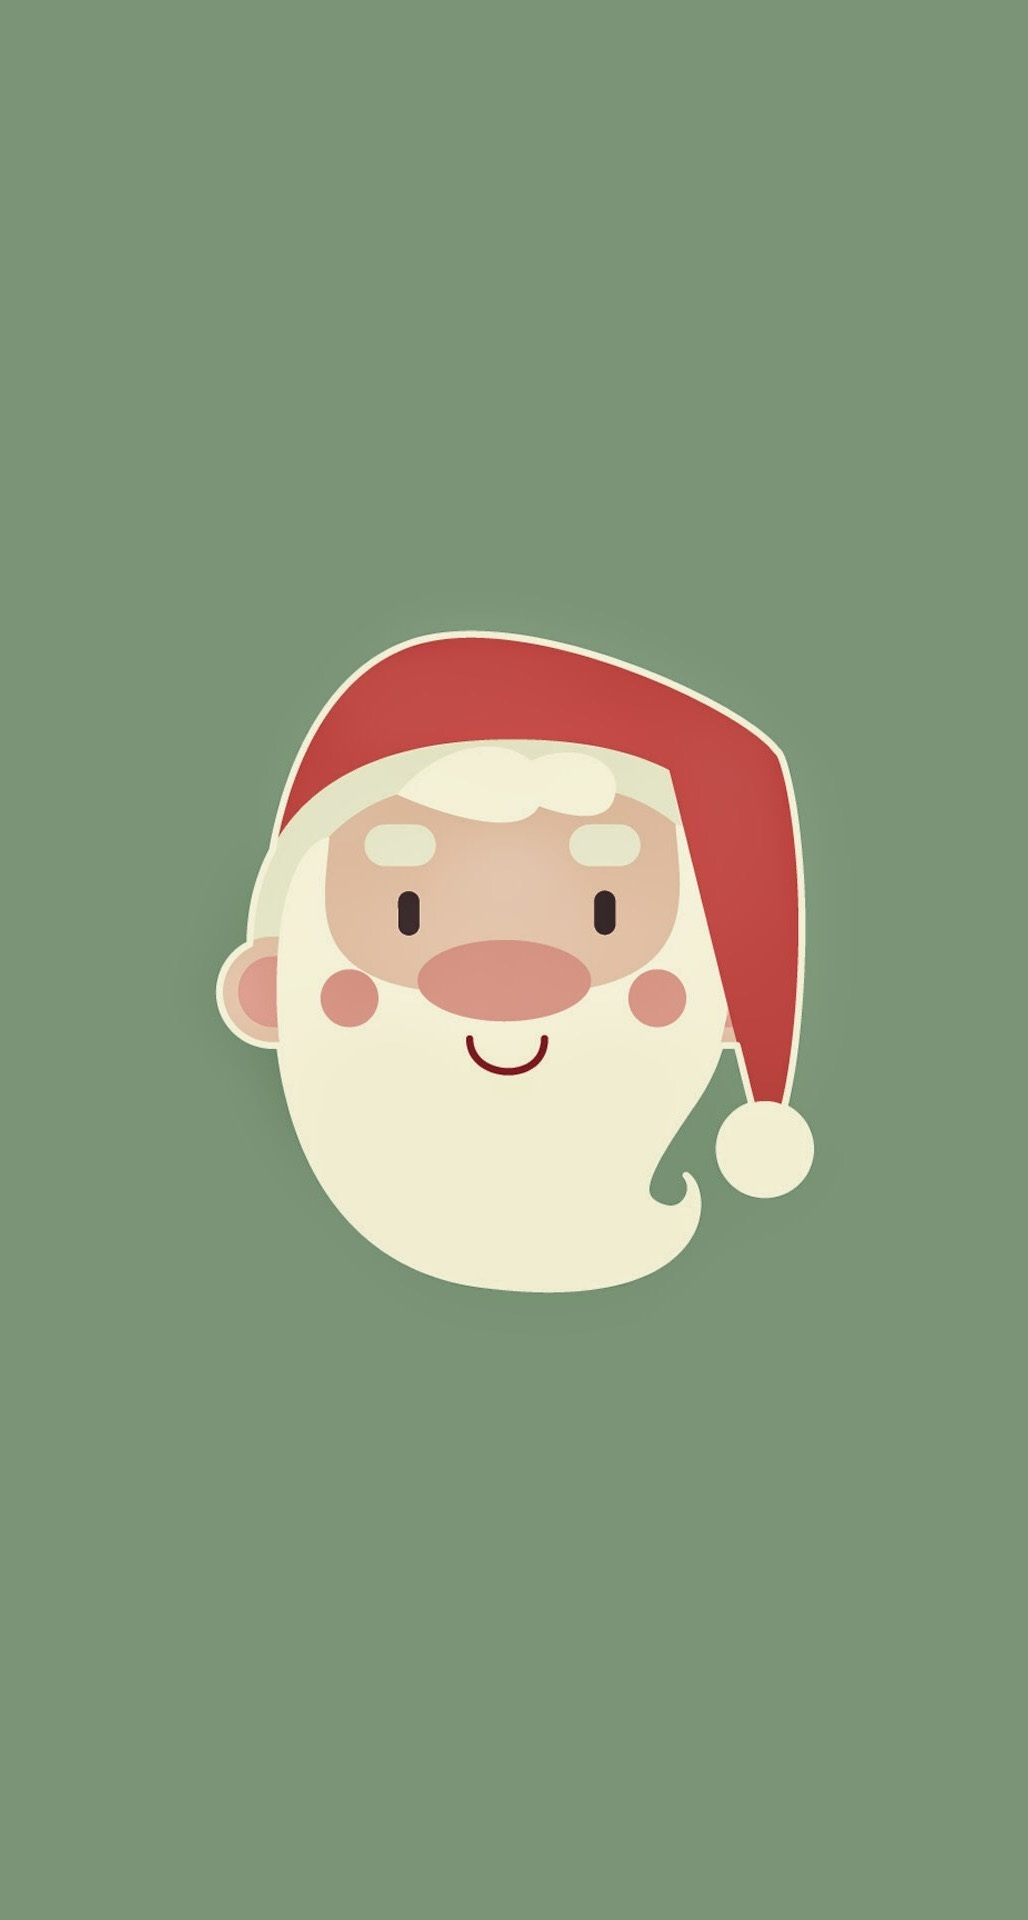 cute santa claus minimal illustration wallpaper for iphone